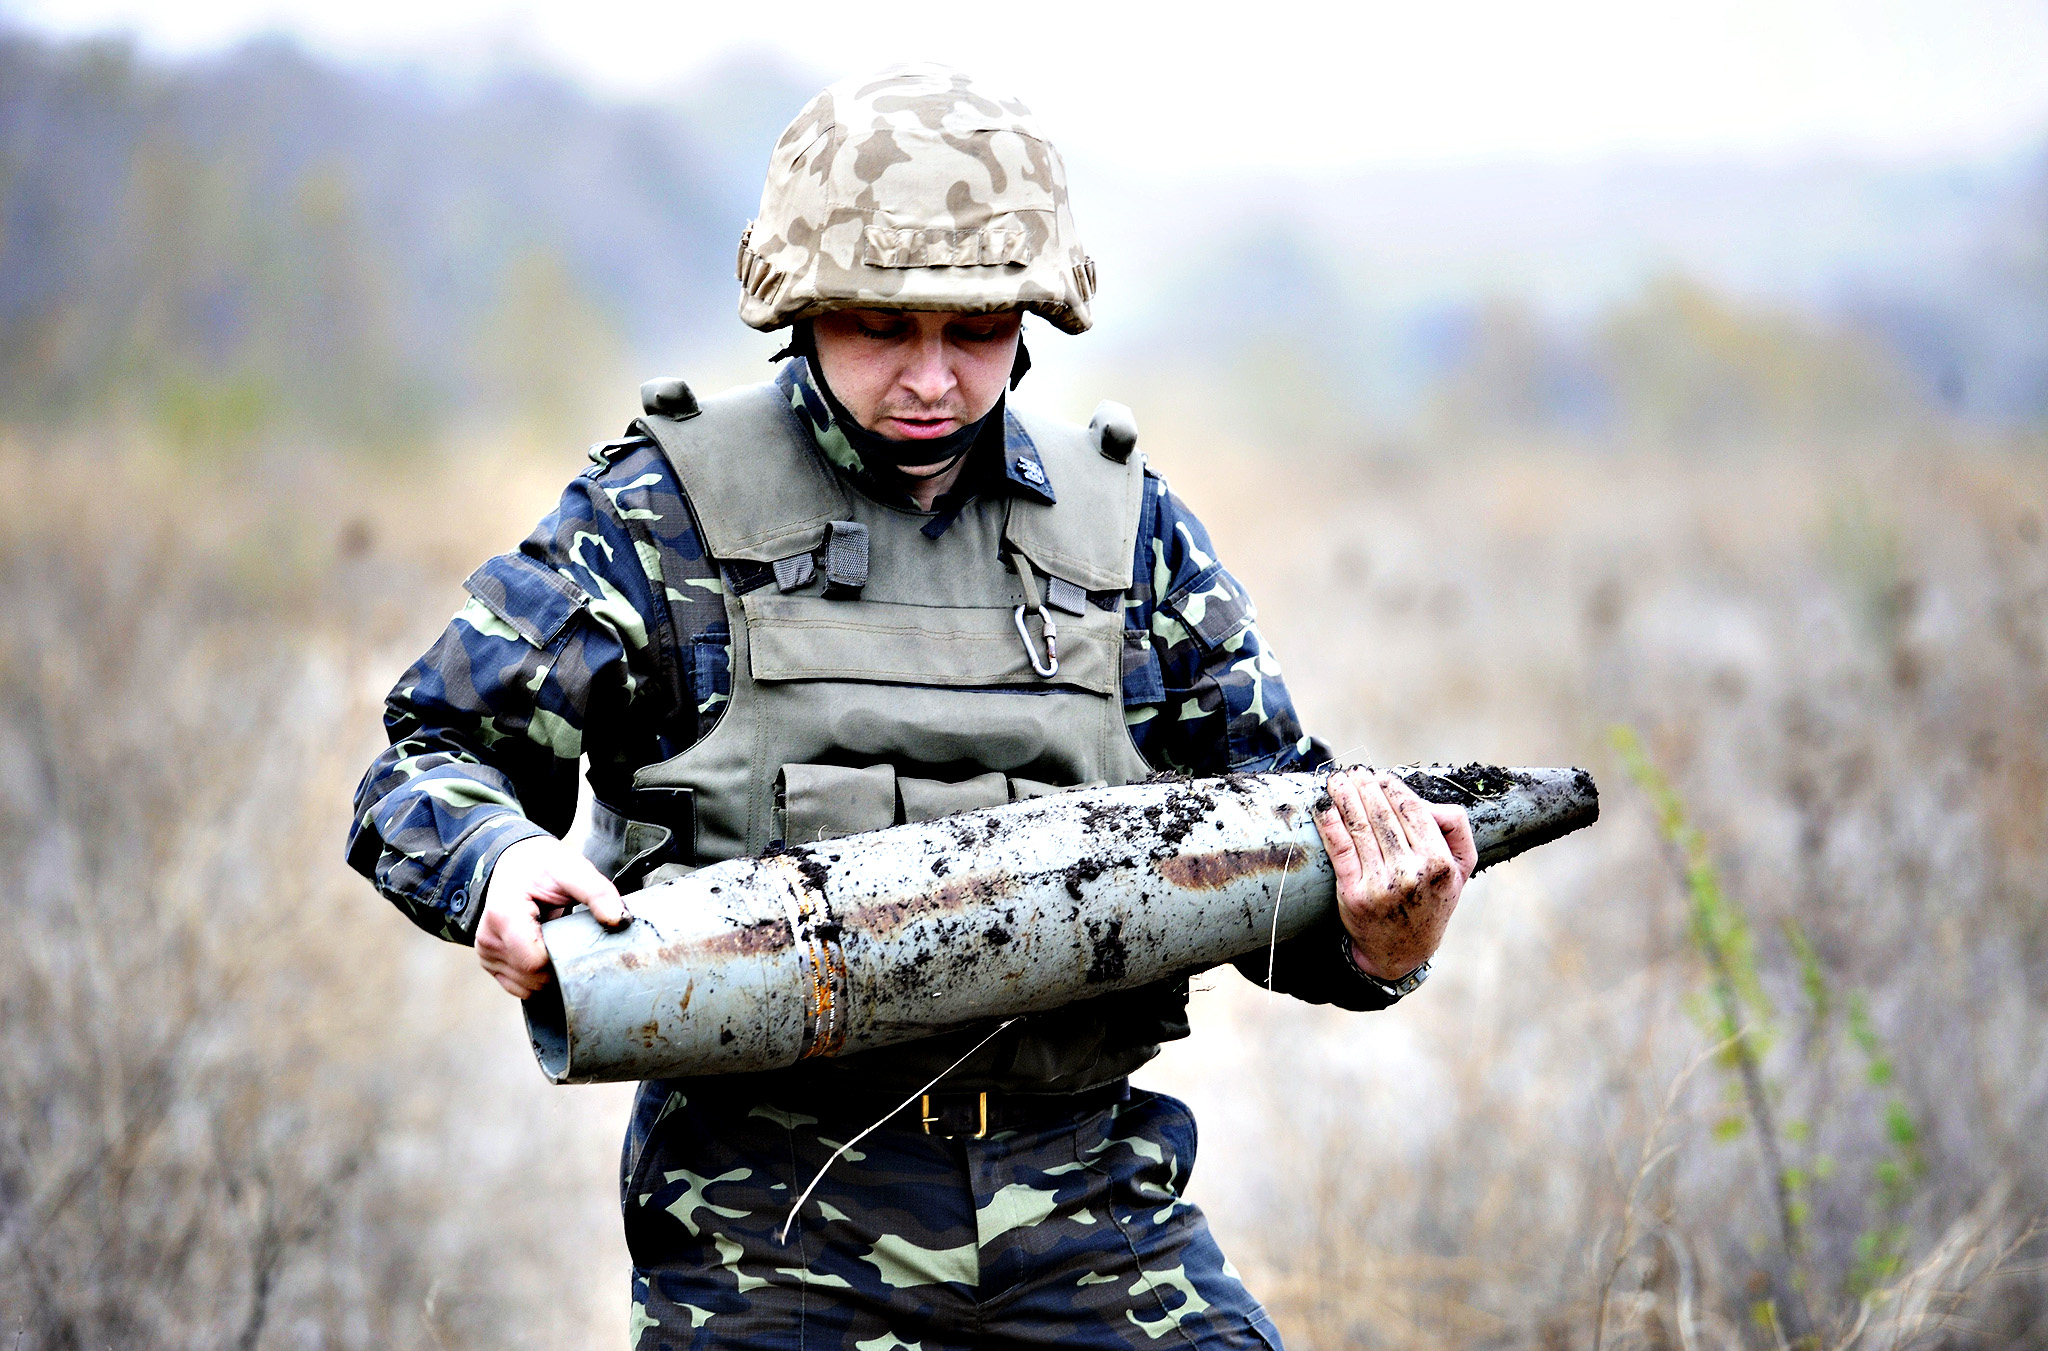 Ukrainian soldier carries an unexploded shell during demining works in a field near the Novoazovsk district in the vicinity of the eastern city of Mariupol on October 23, 2014. As war-weary Ukraine prepares to vote in a snap parliamentary election on October 26, its former master Russia stands by for once apparently unable to influence the outcome. Of the 29 parties running for seats in the 450-seat Verkhovna Rada, the country's parliament, none formally represent the ousted regime of Kremlin-backed Viktor Yanukovych and most support closer ties with the West.